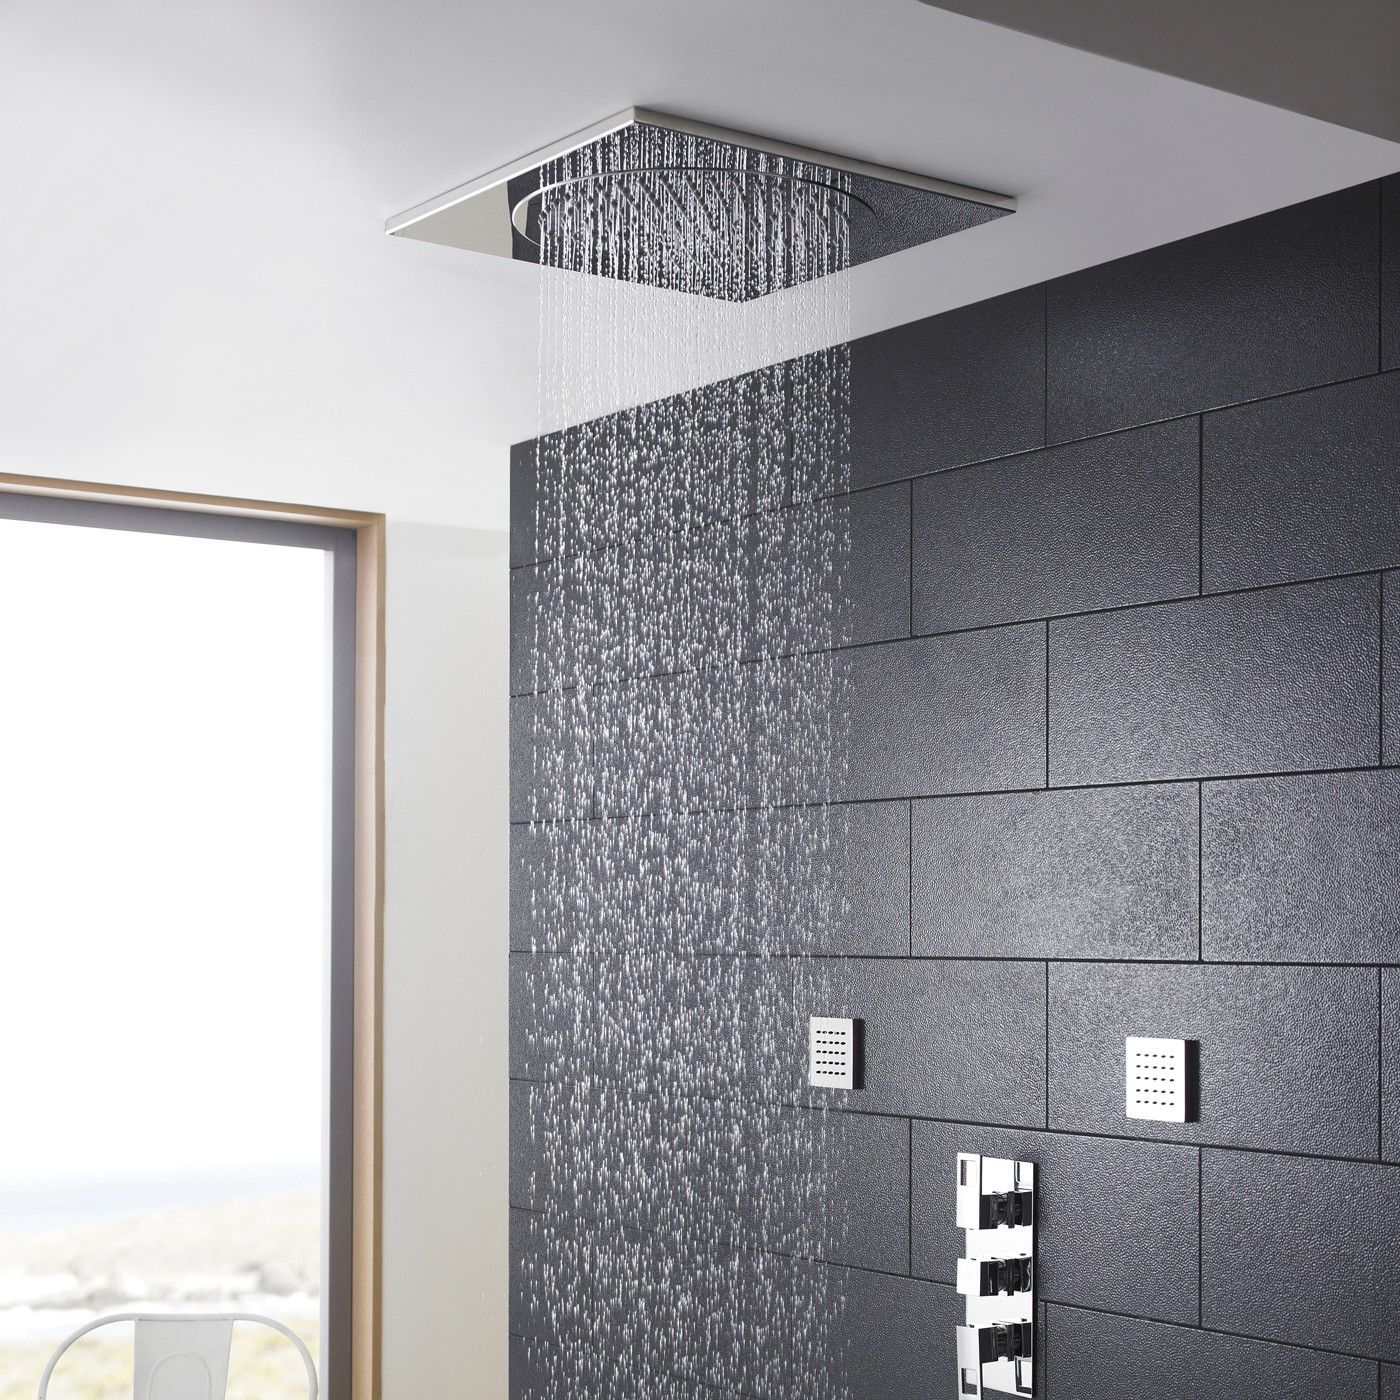 Grohe Shower Head 20 Ceiling Mount Rain Will Make It A Little Luxury In The Especially With Bench Can Combine Hand Held